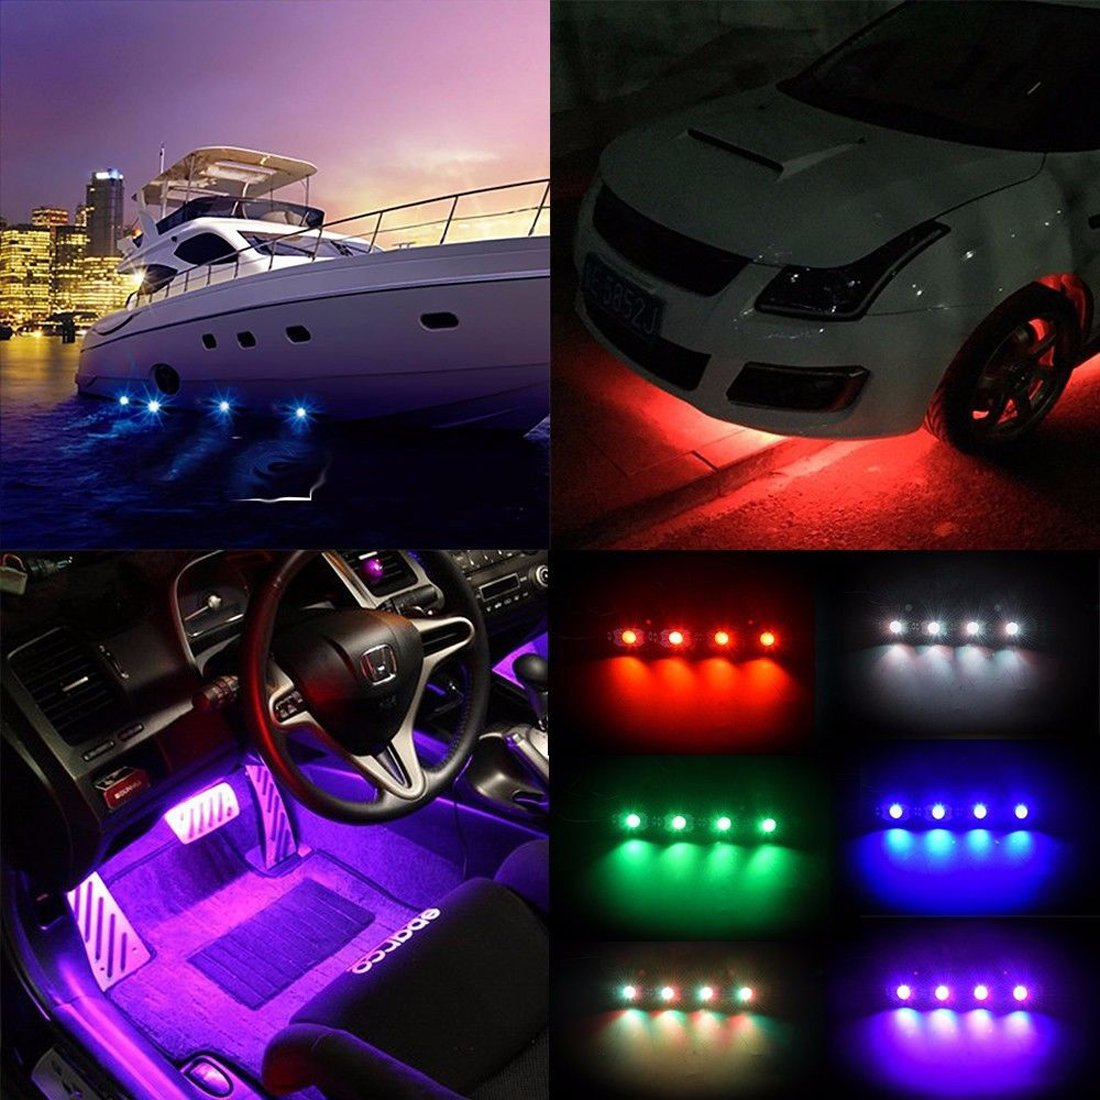 AUXTINGS 4 Pods RGB LED Rock Light Kits with Bluetooth Controller Timing /&Music Mode for JEEP Off Road Truck Car ATV SUV Vehicle Boat Interior